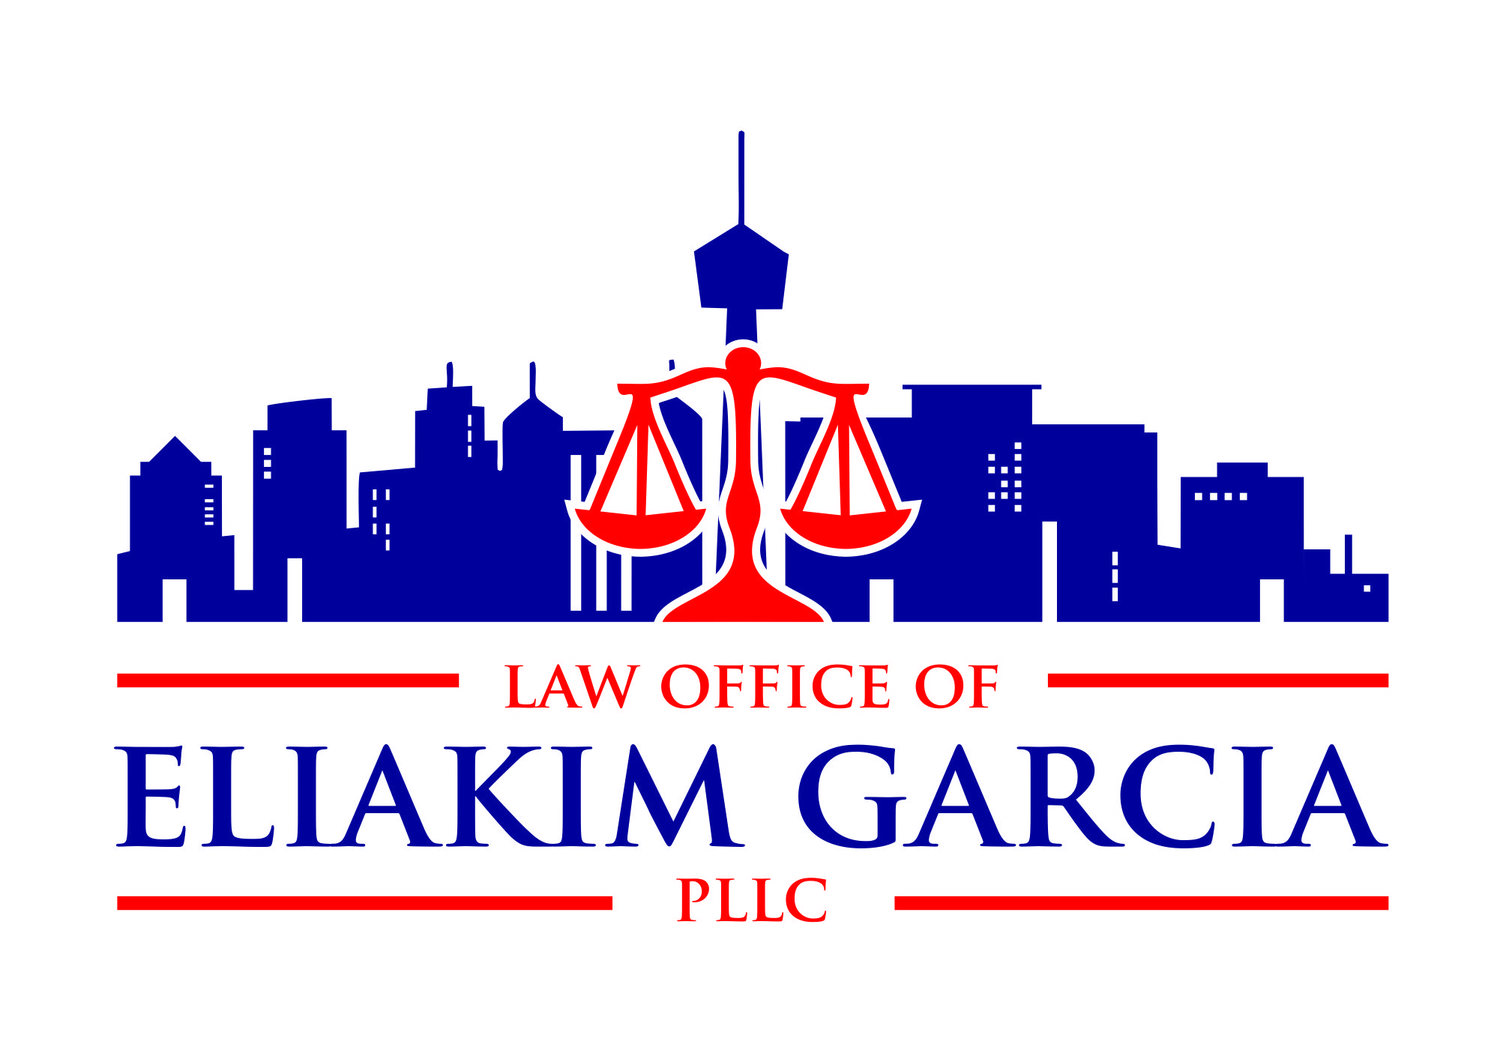 Law Office of Eliakim Garcia PLLC